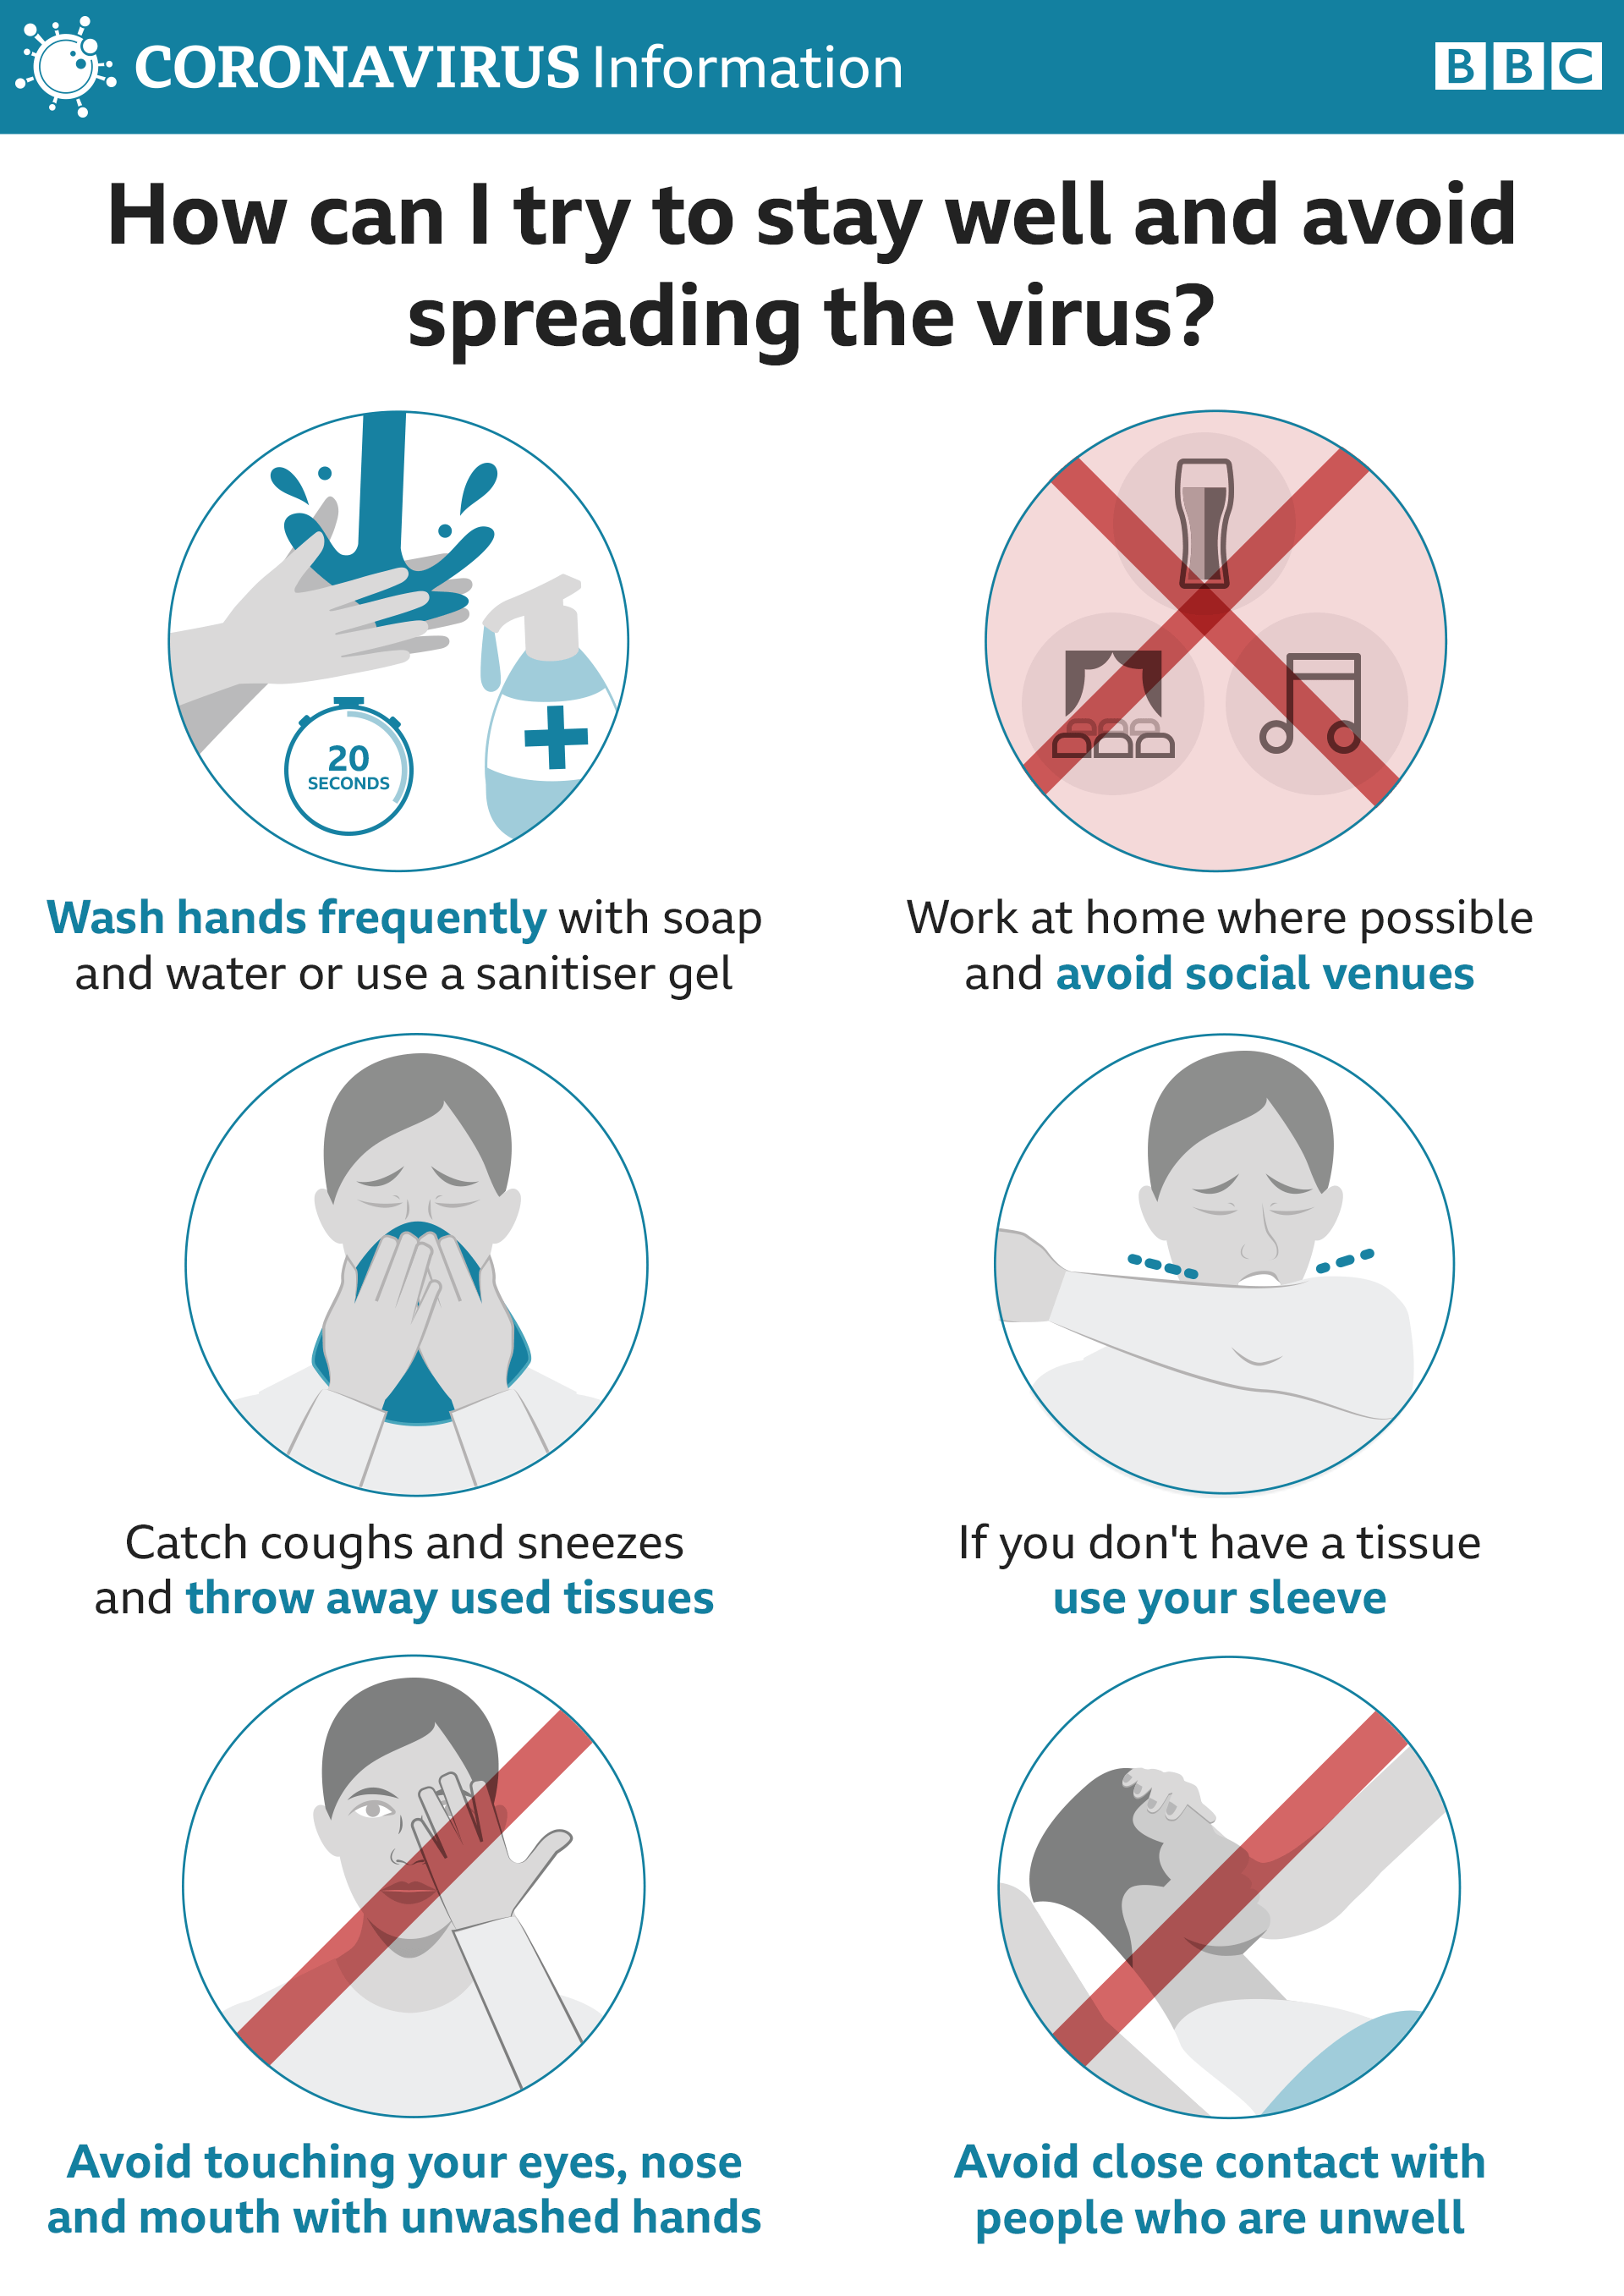 Public health experts say the best way to try to stay is well to start by washing your hands.